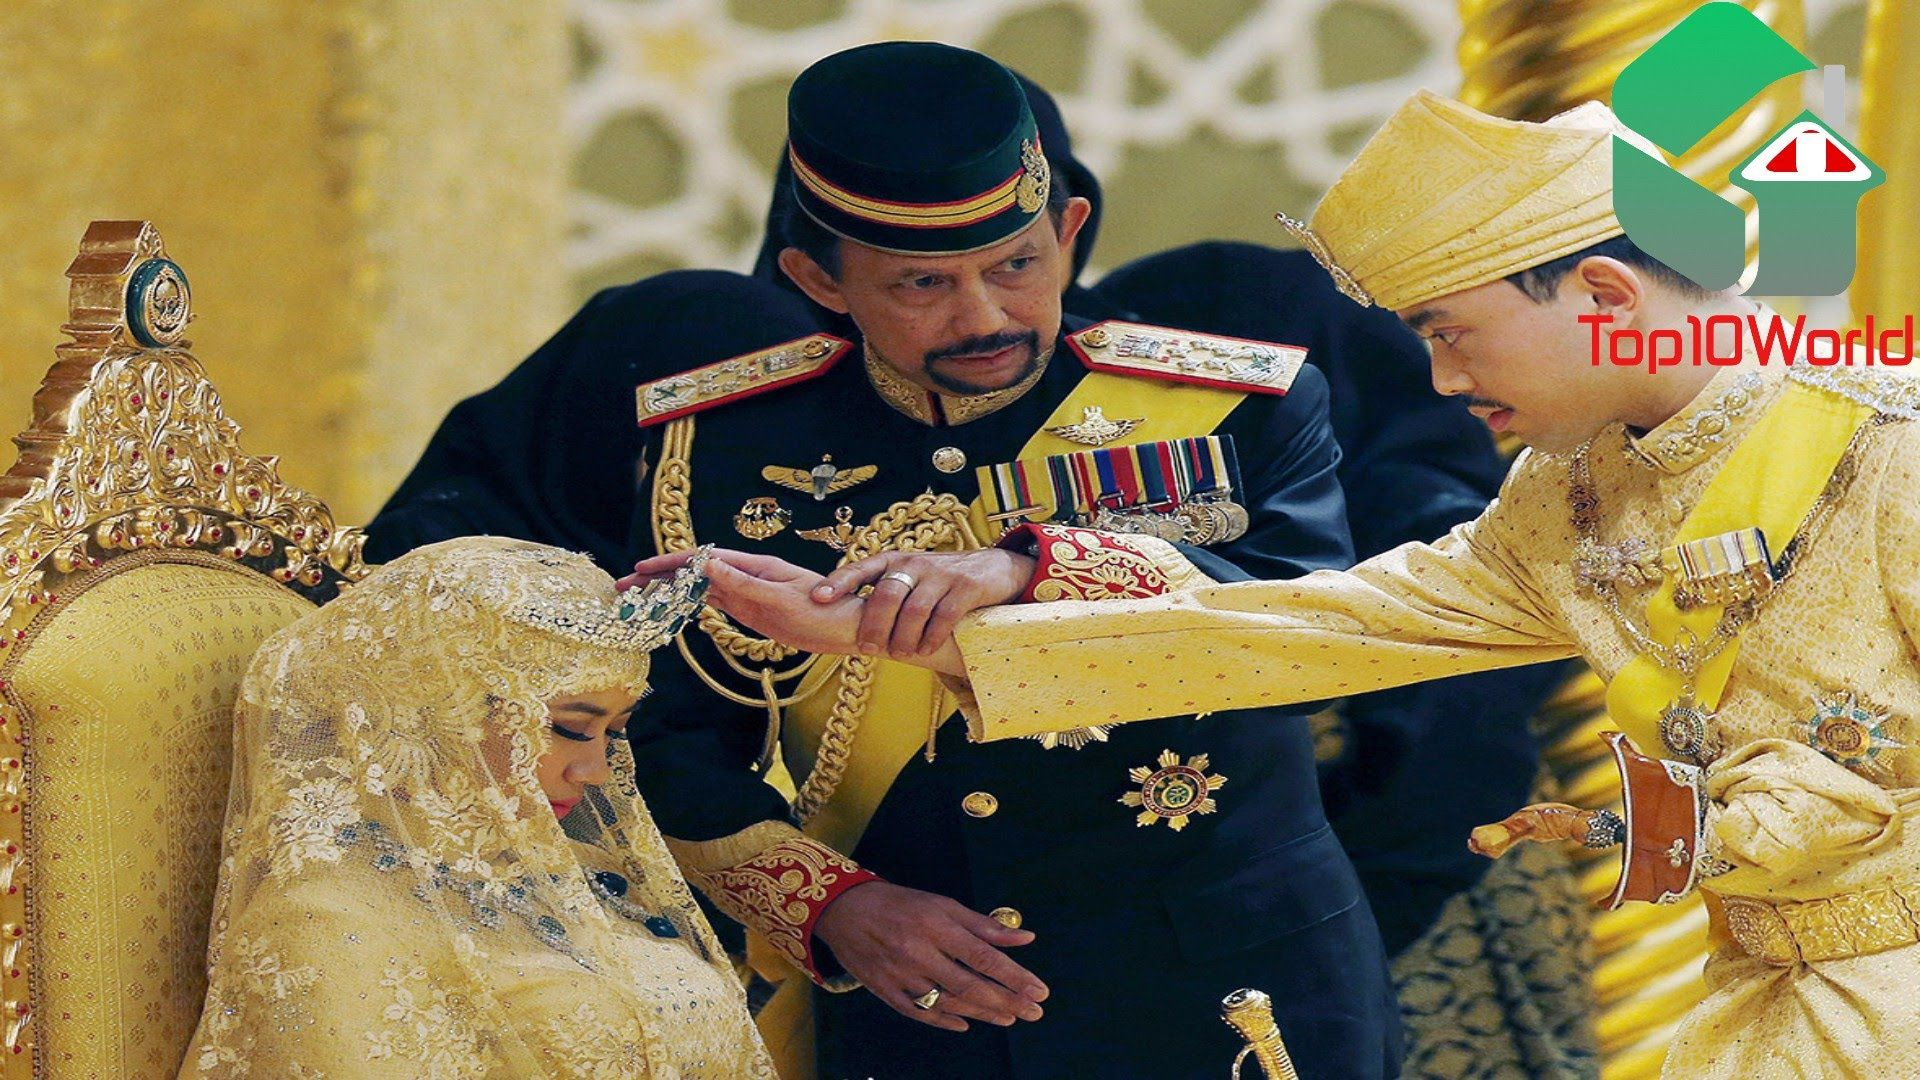 Top 15 Richest Royals In The World